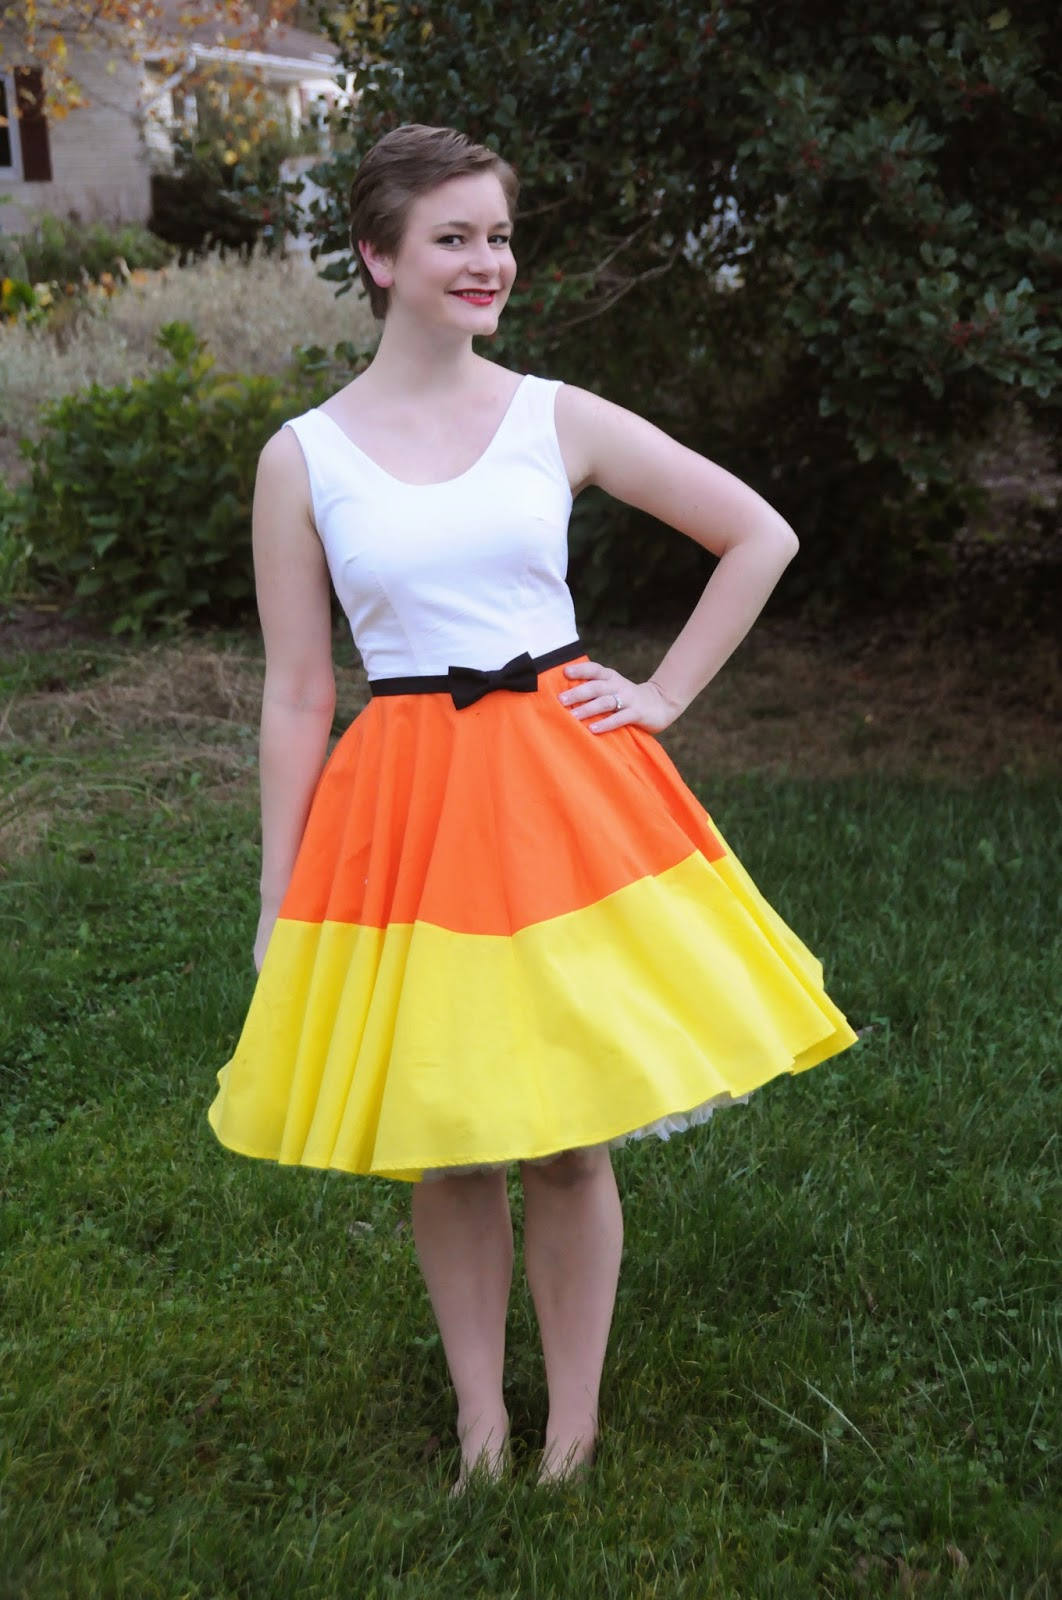 Halloween Week Costume Series Candy Corn Dress  sc 1 st  The Liveaboard Takes the Suburbs & The Liveaboard Takes the Suburbs: Halloween Week Costume Series ...